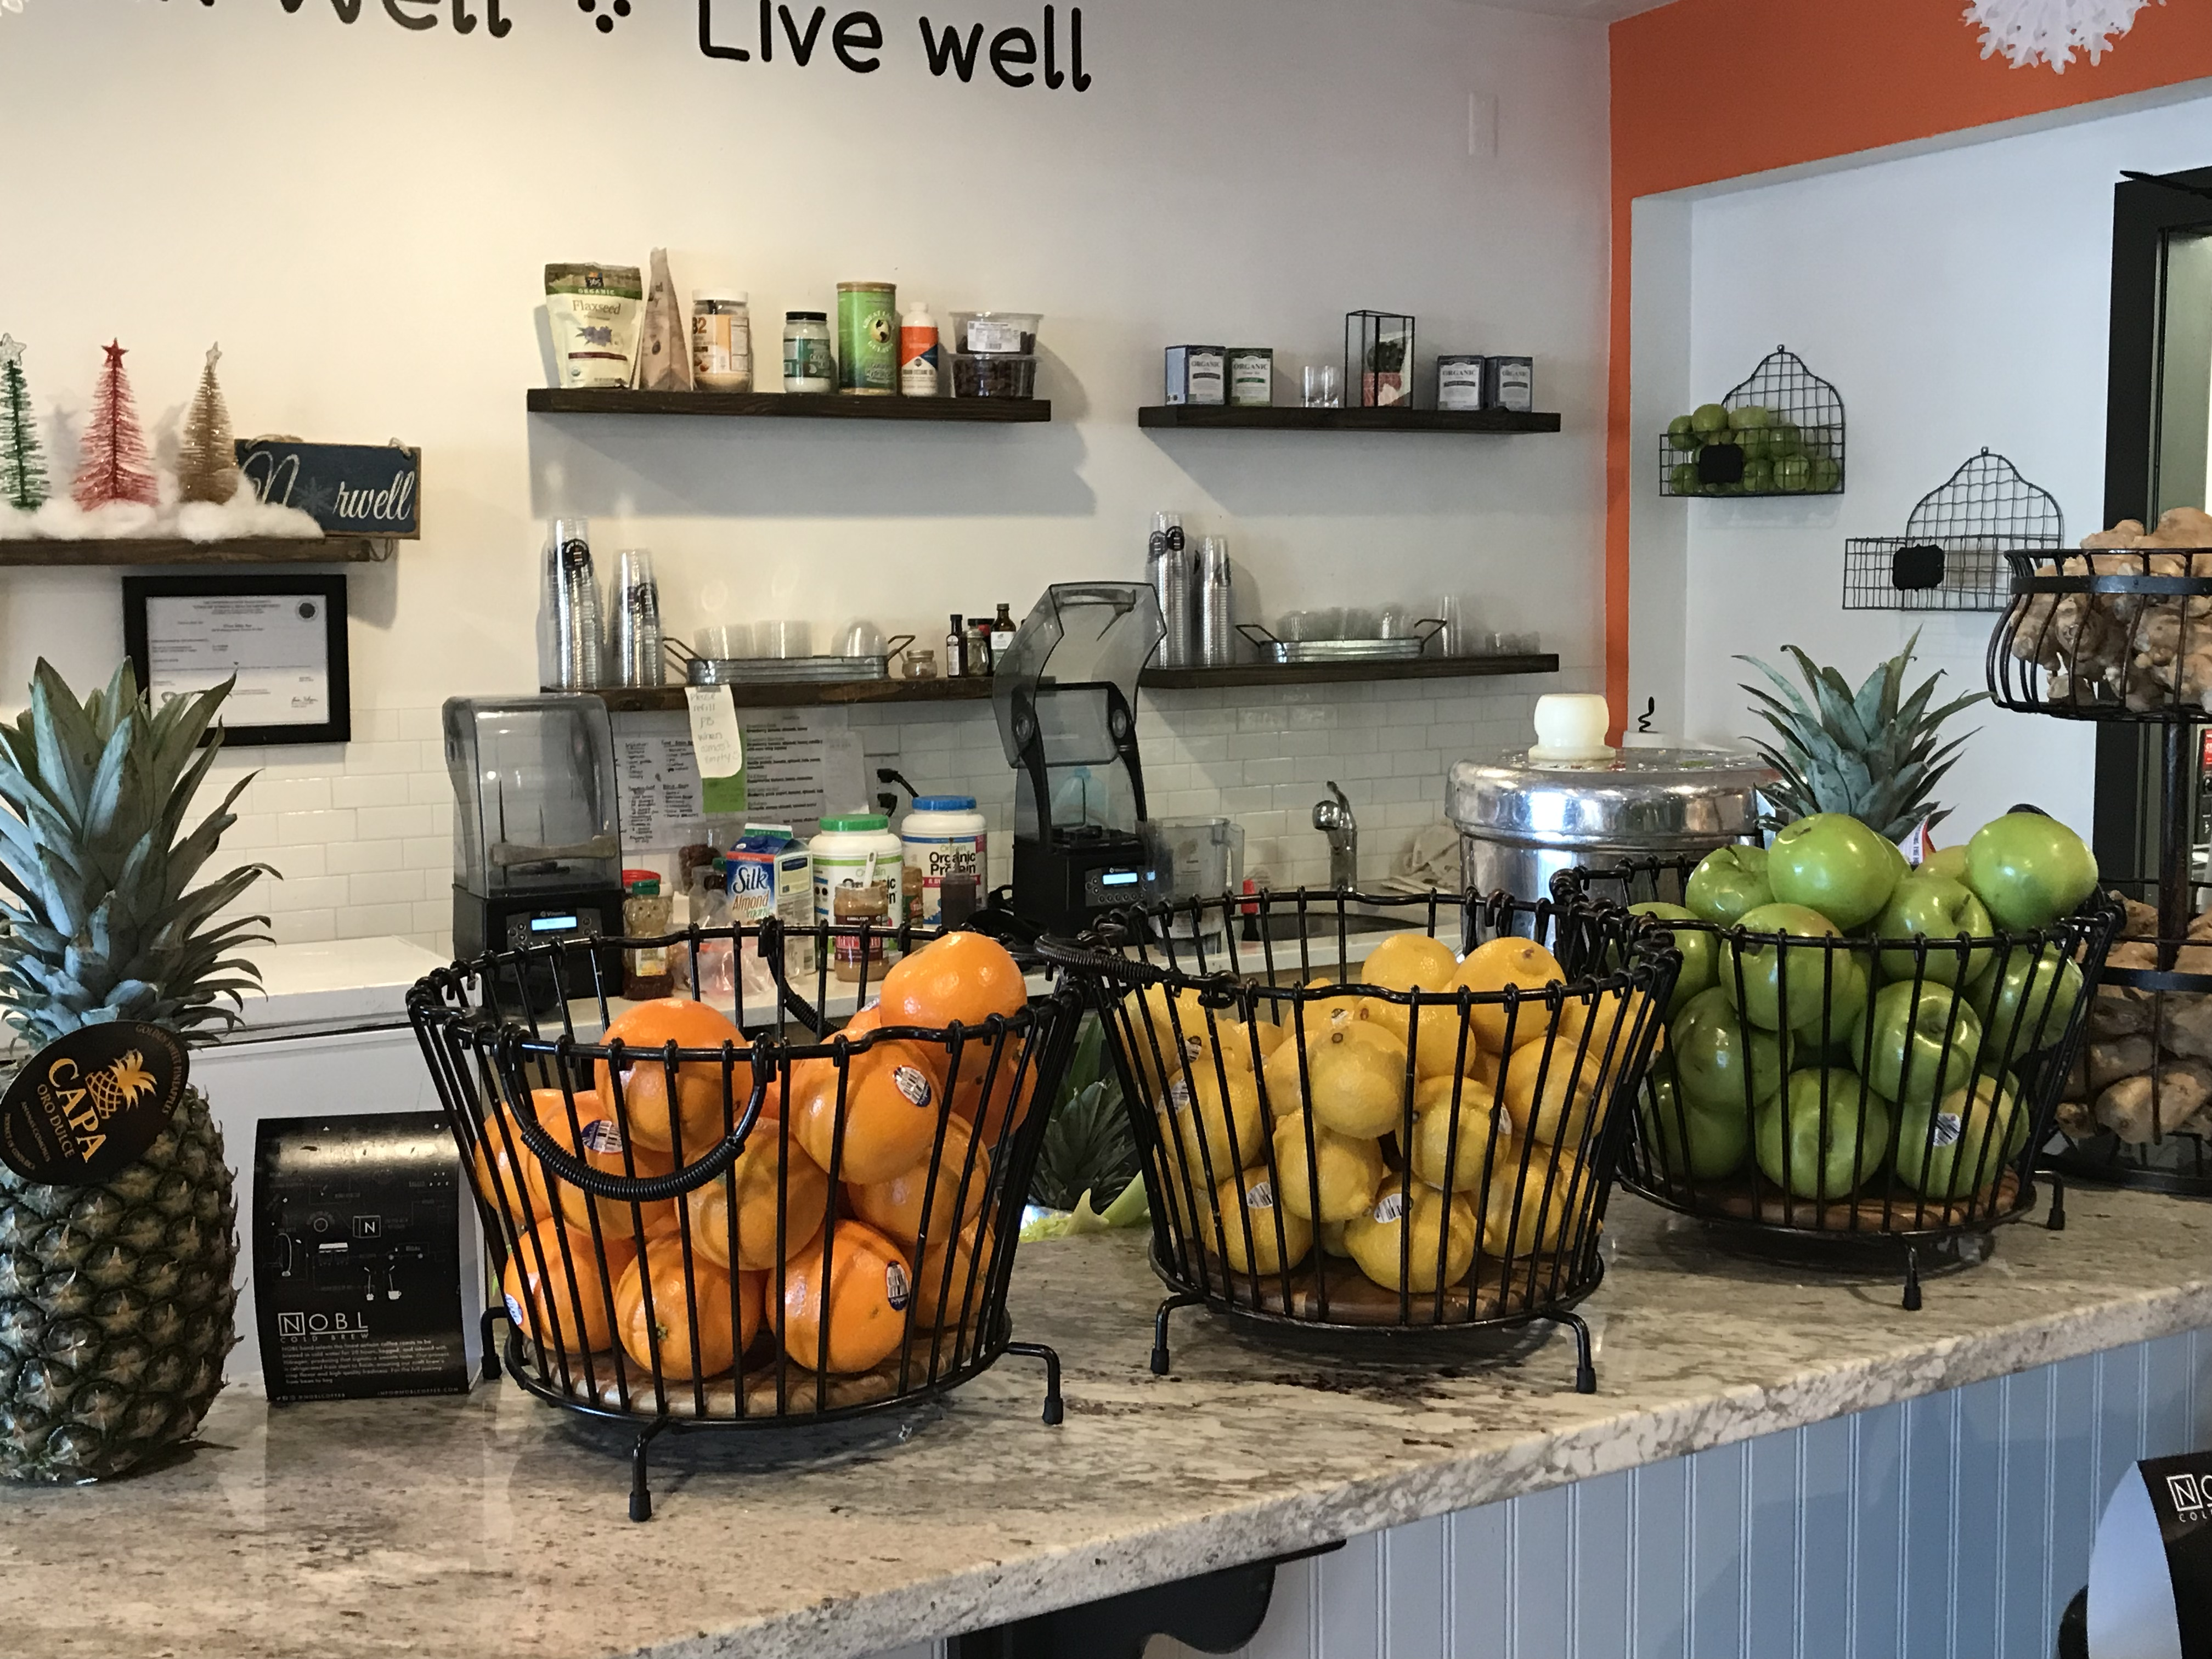 PRESS Juice Bar in Norwell MA – Fueling bodies with real food that tastes great